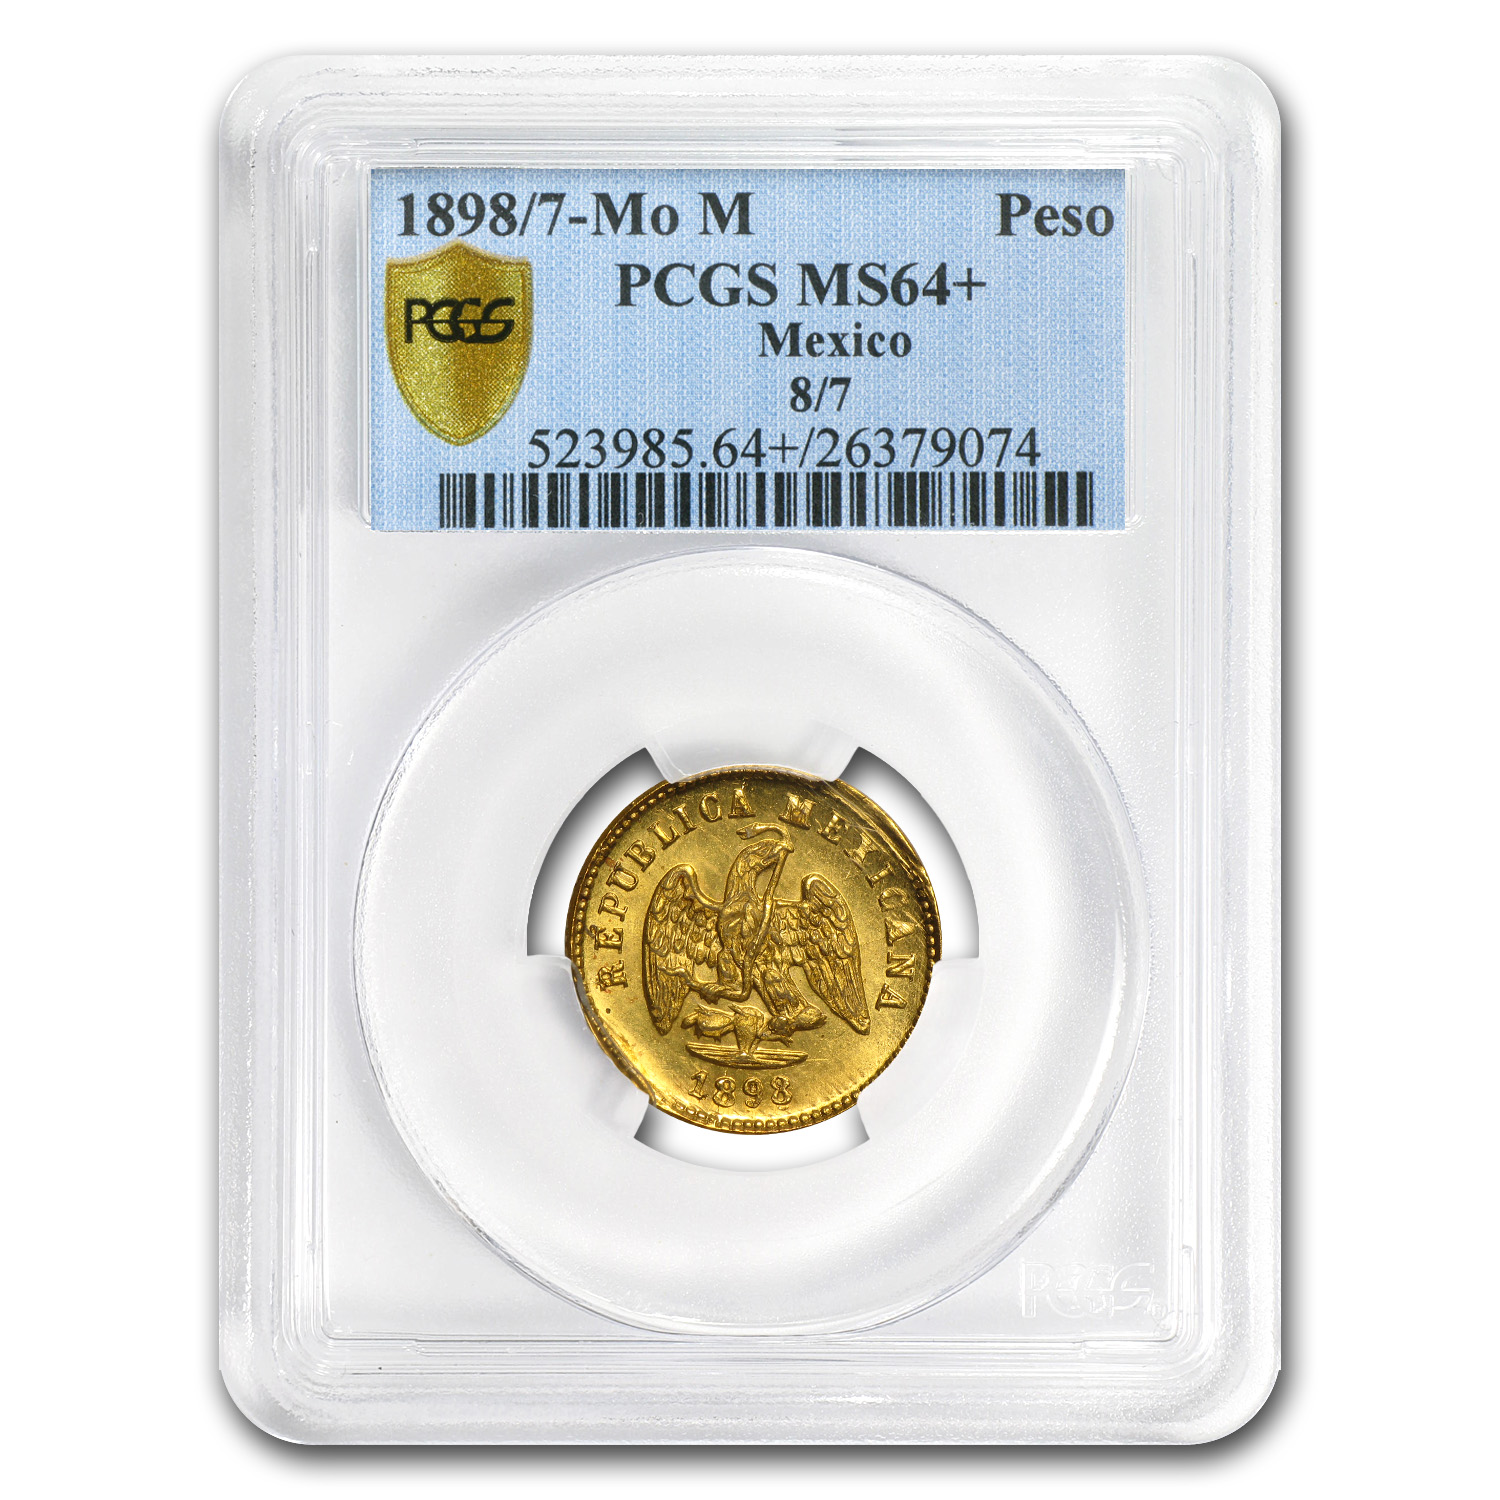 1898/7-Mo Mexico Gold Peso MS-64+ PCGS